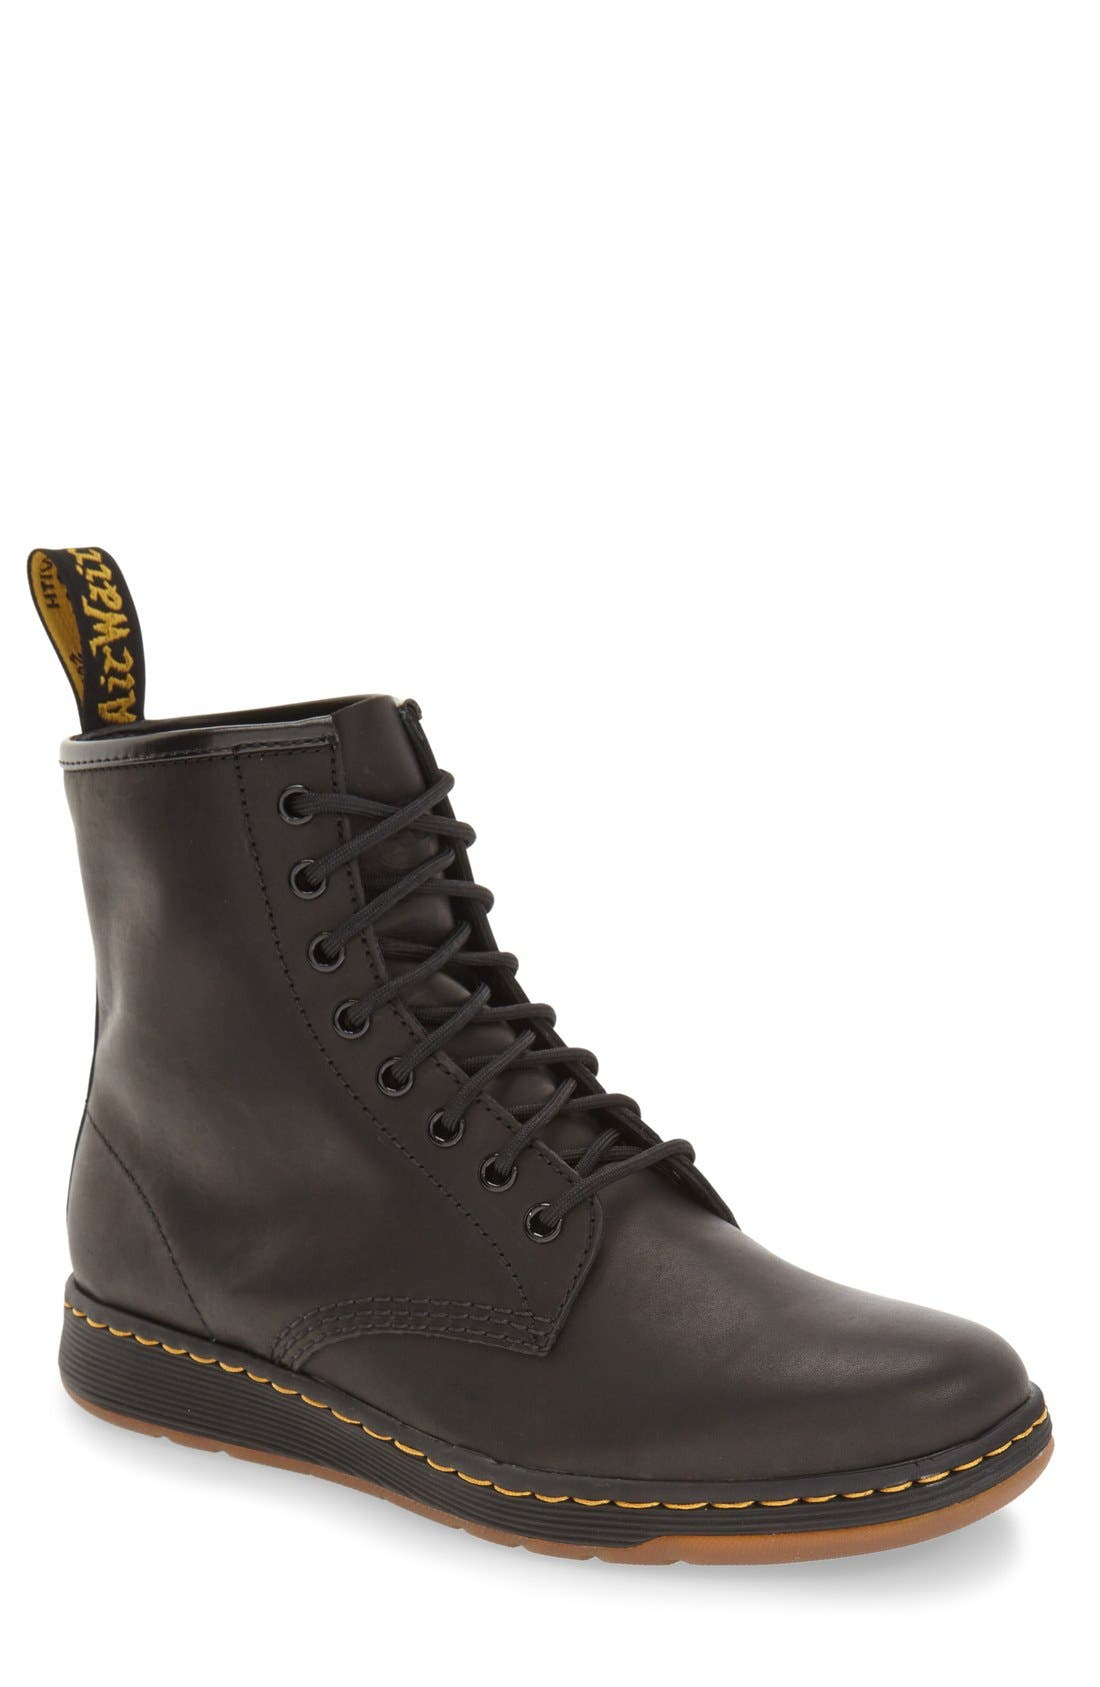 DR. MARTENS, 'Newton' Boot, Main thumbnail 1, color, BLACK LEATHER